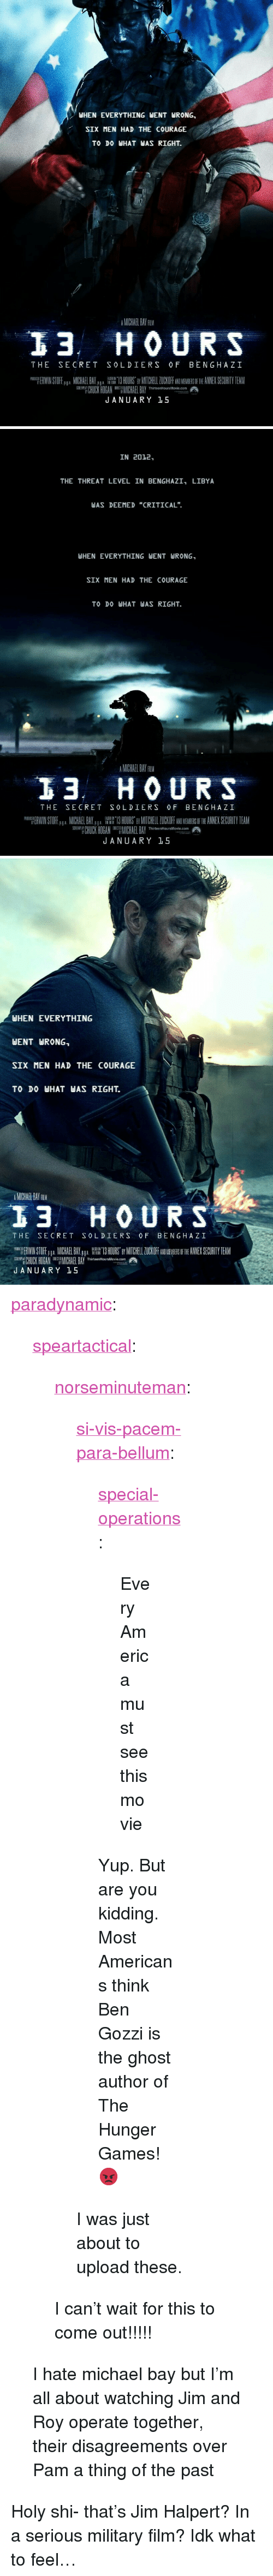 """America, The Hunger Games, and Jim Halpert: IHEN EVERYTHING IENT WRONG,  SIX MEN HAD THE COURAGE  TO DO WHAT WAS RIGHT.  AMICHAEL BAY FILM  13 HOURS  THE SECRET SOLDIERS OF BENGHAZ I  ANNEX SECURITY TEAM  MICH EL BAY 13 HOURS MITCHELL ZUCKOFF INEMERS  SCREENPLIICHUCK HOGAN UREC BYMICHAEL BAY ThirteenHoursMovie.com鼎  JANUARY 15  뺍 ERWIN ST FE   IN 2012,  THE THREAT LEVEL IN BENGHAZI, LIBYA  WAS DEEMED """"CRITICAL"""".  WHEN EVERYTHING WENT WRONG,  SIX MEN HAD THE COURAGE  TO DO WHAT WAS RIGHT.  AMICHAEL BAY FILM  13.  H O URS  THE SECRET SOLDIERS OF BENGHAZI  """"TERWINST F.pg MICHAEL BAY. a.懼 13 HOURS  MITCH ELL ZU OF  ME ERI  ANI EX SECURITY TEAM  B  HUCK HOGAN ICHAEL BAY Thirien-HoursMowiecom  JANUARY 15   WHEN EVERYTHING  WENT WRONG  SIX MEN HAD THE COURAGE  TO DO WHAT WAS RIGHT.  MICHALEL BAY FUM  3 HOURS  THE SECRET SOLDIERS O F BENGHAZI  mp ERWIN STOFF  JANUARY 15  MICHAEL BAY.  橆  3 HOURS  MITCHELL ZU OFF  ME  ANNEX SECURITY TEAM  CHUCK HOGNHAEL BA.com <p><a href=""""http://paradynamic.tumblr.com/post/134943171999/speartactical-norseminuteman"""" class=""""tumblr_blog"""">paradynamic</a>:</p>  <blockquote><p><a class=""""tumblr_blog"""" href=""""http://speartactical.tumblr.com/post/134940501992"""">speartactical</a>:</p> <blockquote> <p><a class=""""tumblr_blog"""" href=""""http://norseminuteman.tumblr.com/post/134895802256"""">norseminuteman</a>:</p> <blockquote> <p><a class=""""tumblr_blog"""" href=""""http://si-vis-pacem-para-bellum.tumblr.com/post/134895728167"""">si-vis-pacem-para-bellum</a>:</p> <blockquote> <p><a class=""""tumblr_blog"""" href=""""http://special-operations.tumblr.com/post/134894895213"""">special-operations</a>:</p> <blockquote> <p>Every America must see this movie</p> </blockquote> <p>Yup.  But are you kidding.  Most Americans think Ben Gozzi is the ghost author of The Hunger Games! 😡</p> </blockquote> <p>I was just about to upload these.</p> </blockquote> <p>I can't wait for this to come out!!!!!</p> </blockquote>  <p>I hate michael bay but I'm all about watching Jim and Roy operate together, their d"""